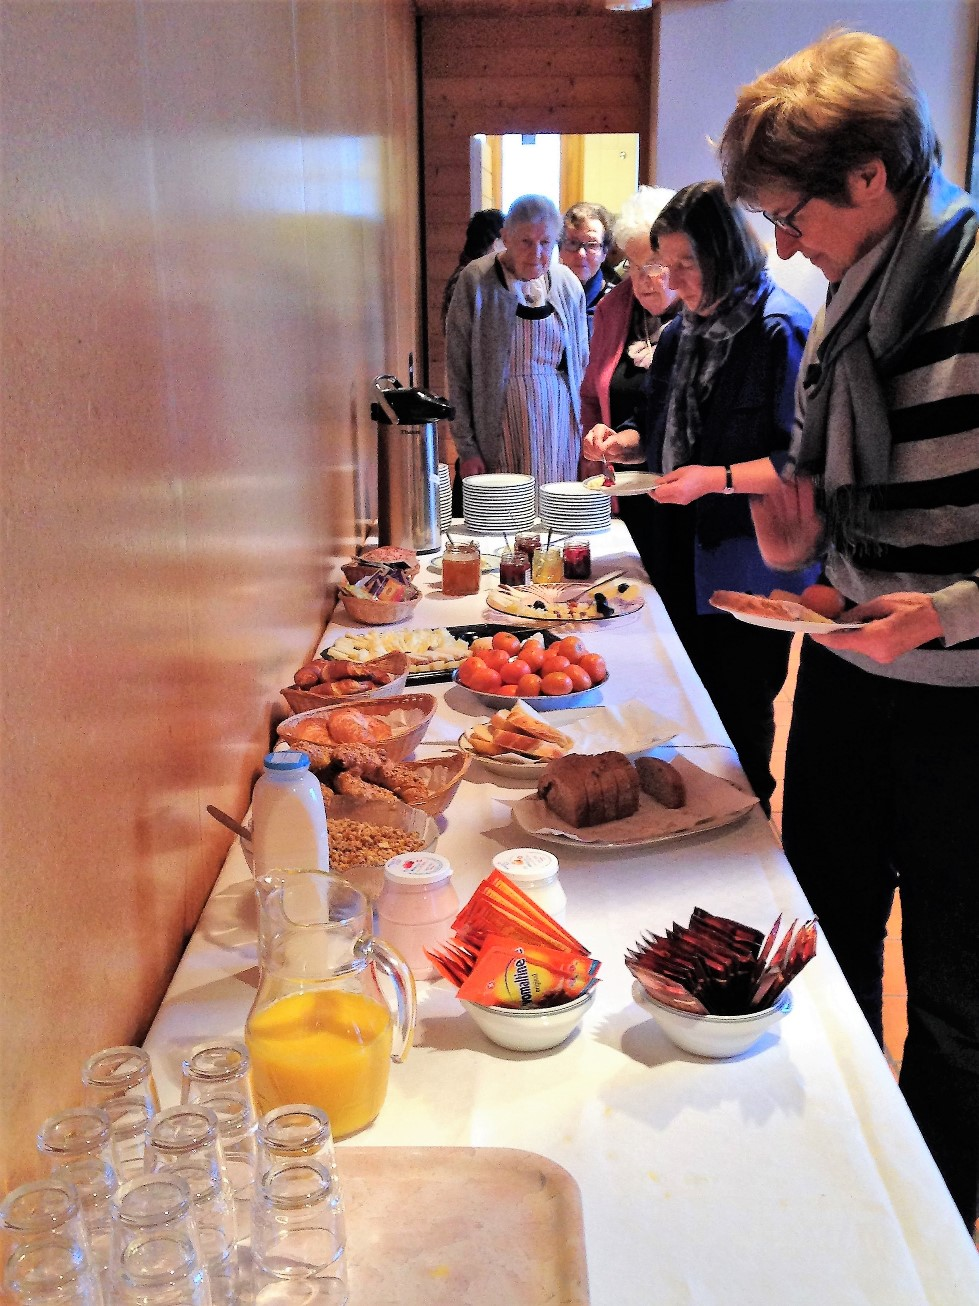 Selbstbedienung am Zmorge-Buffet